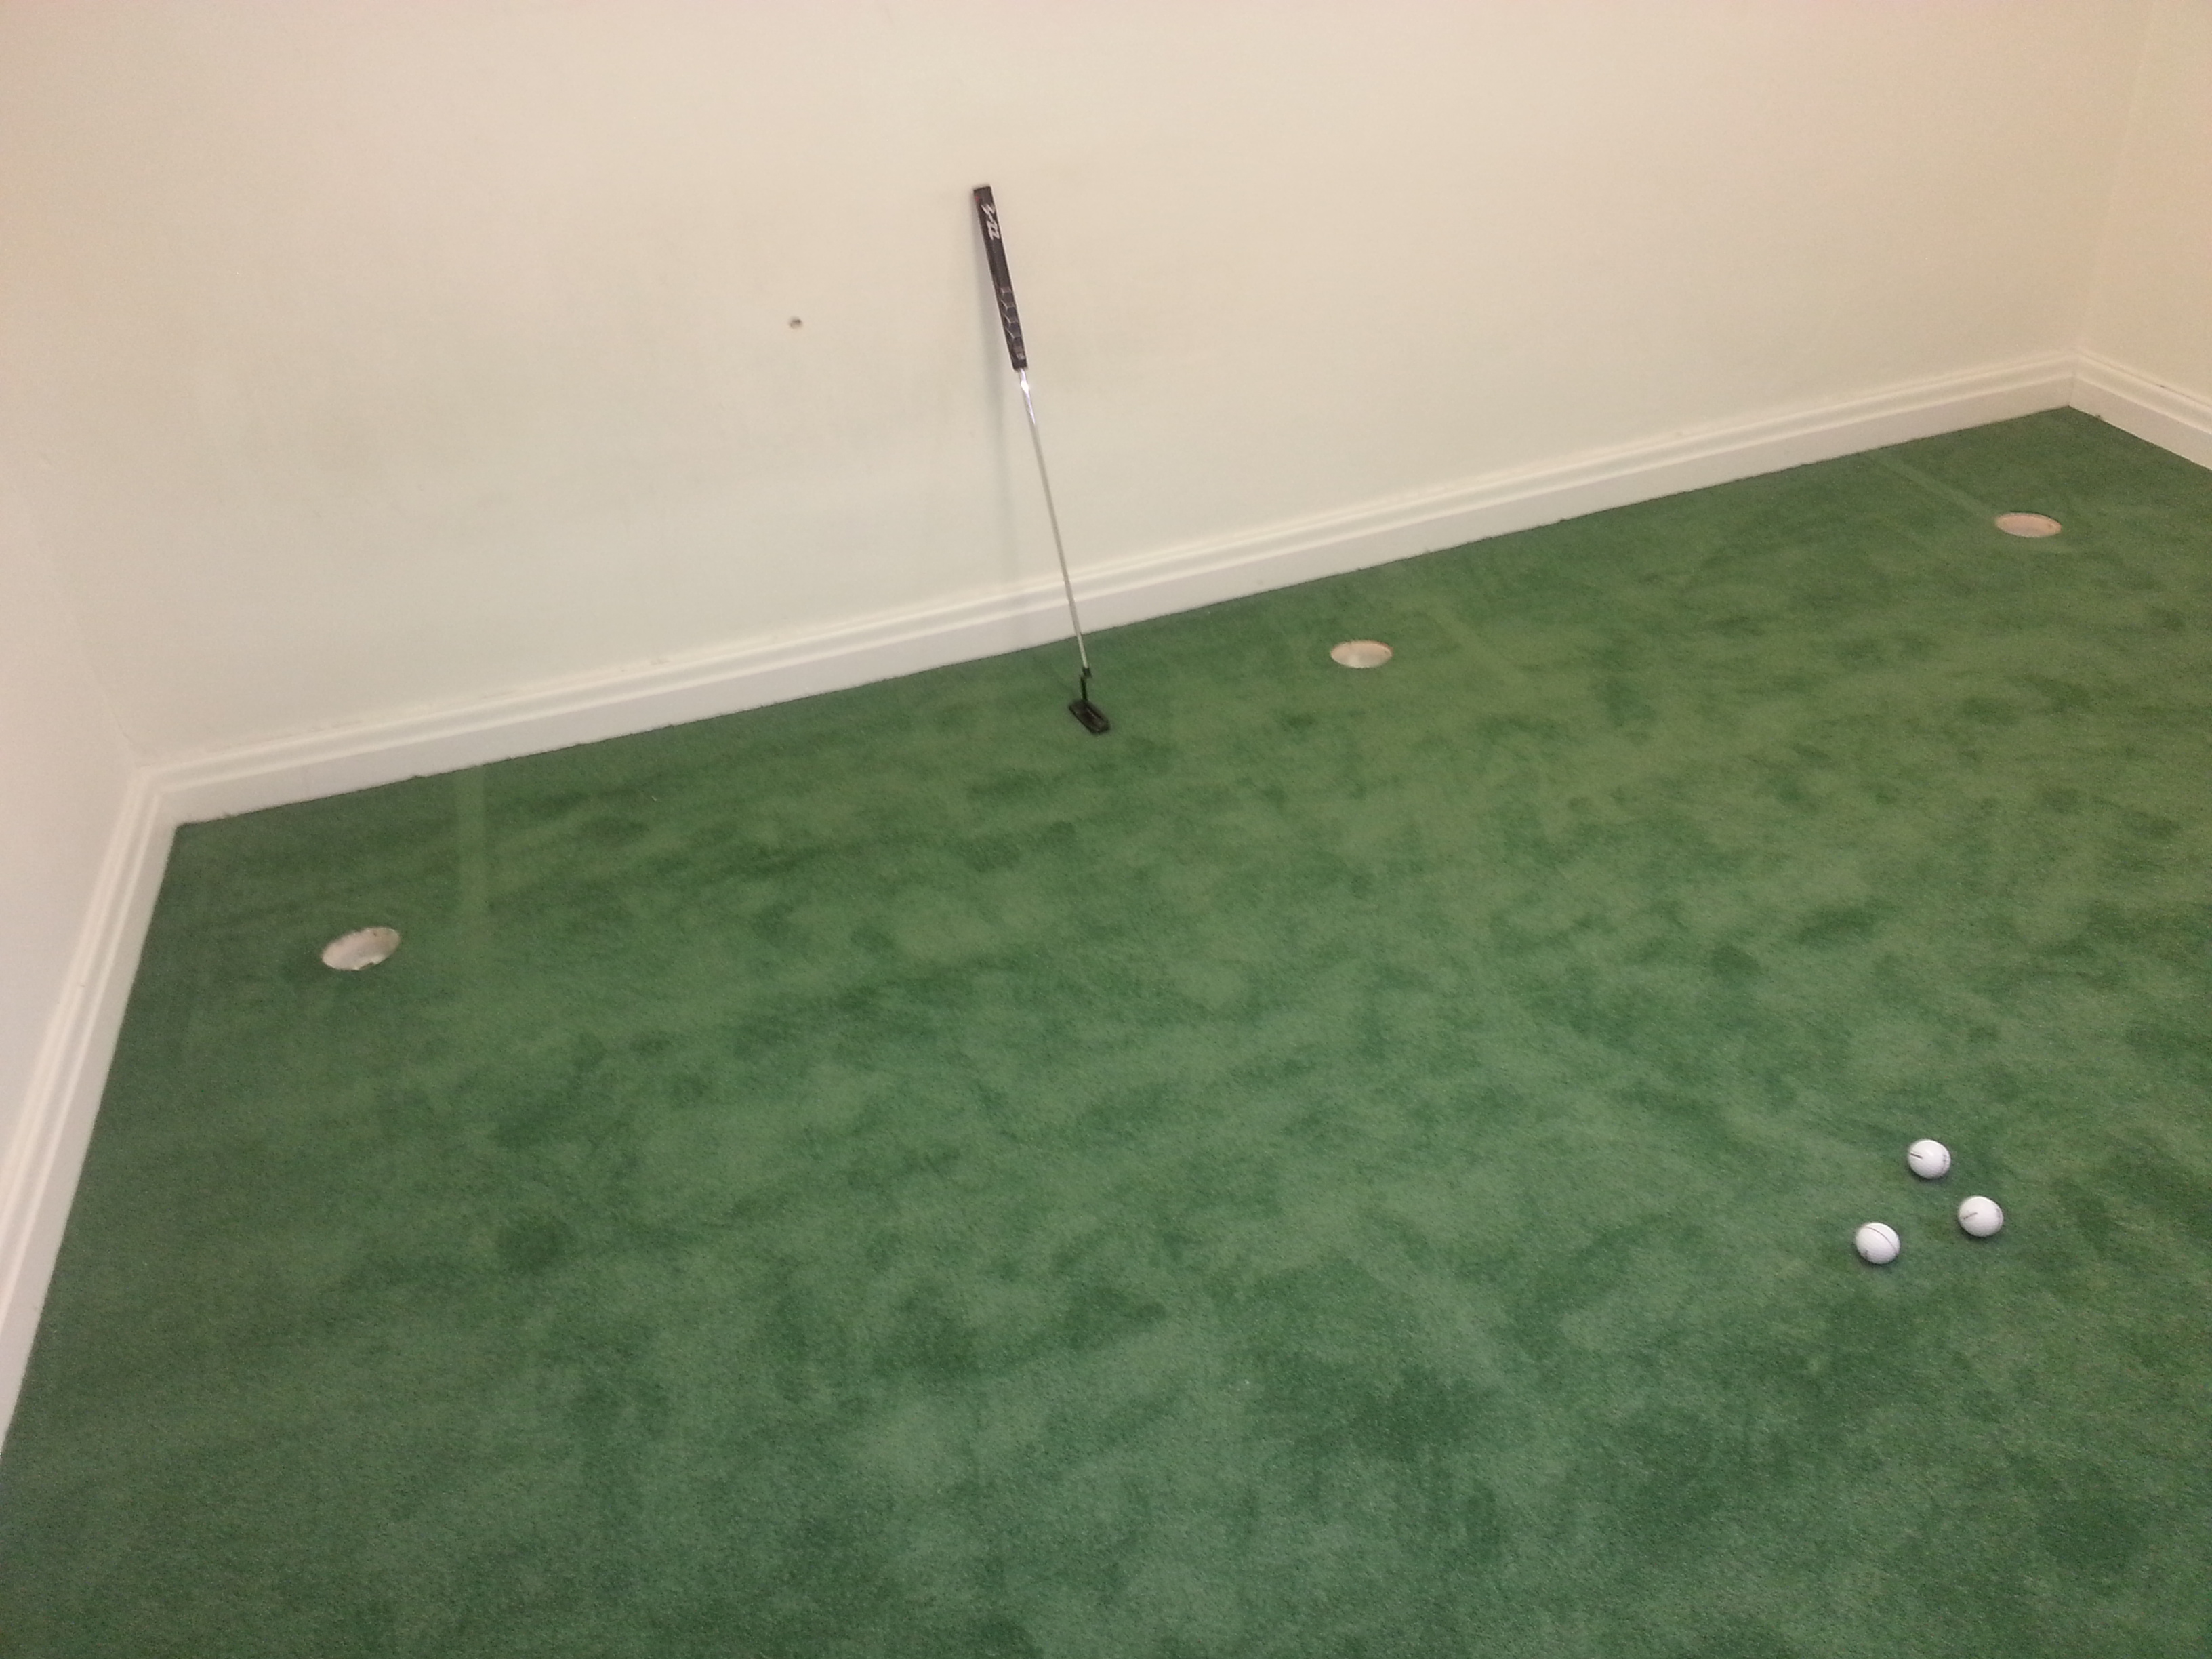 Beautiful indoor putting green carpet contemporary for Indoor outdoor carpet green